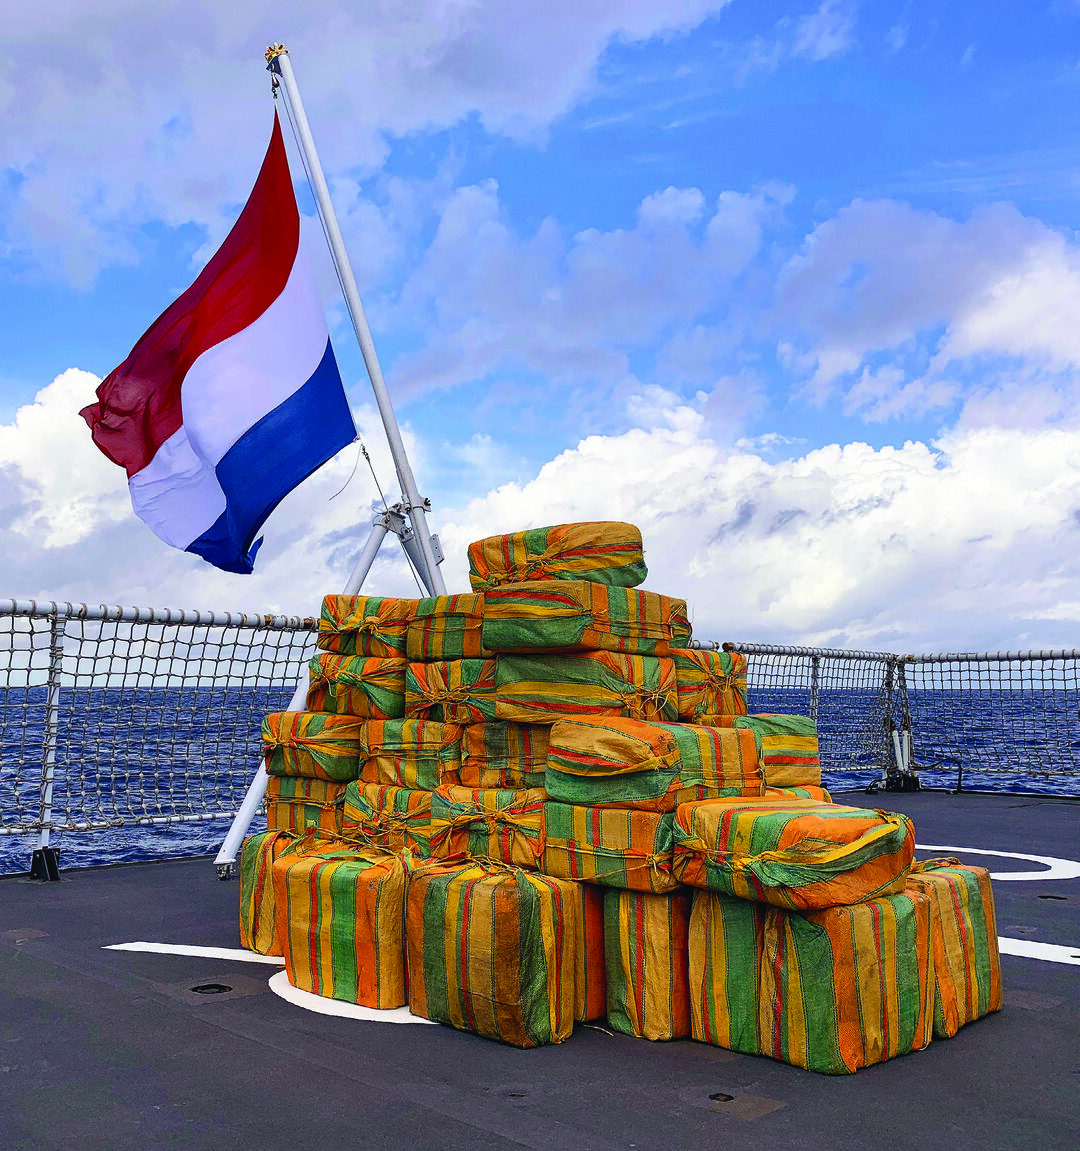 Contraband seized by HNLMS Groningen and an embarked U.S. Coast Guard LEDET during CTG 4.4 operations in the Caribbean.(Royal Netherland Navy photo)